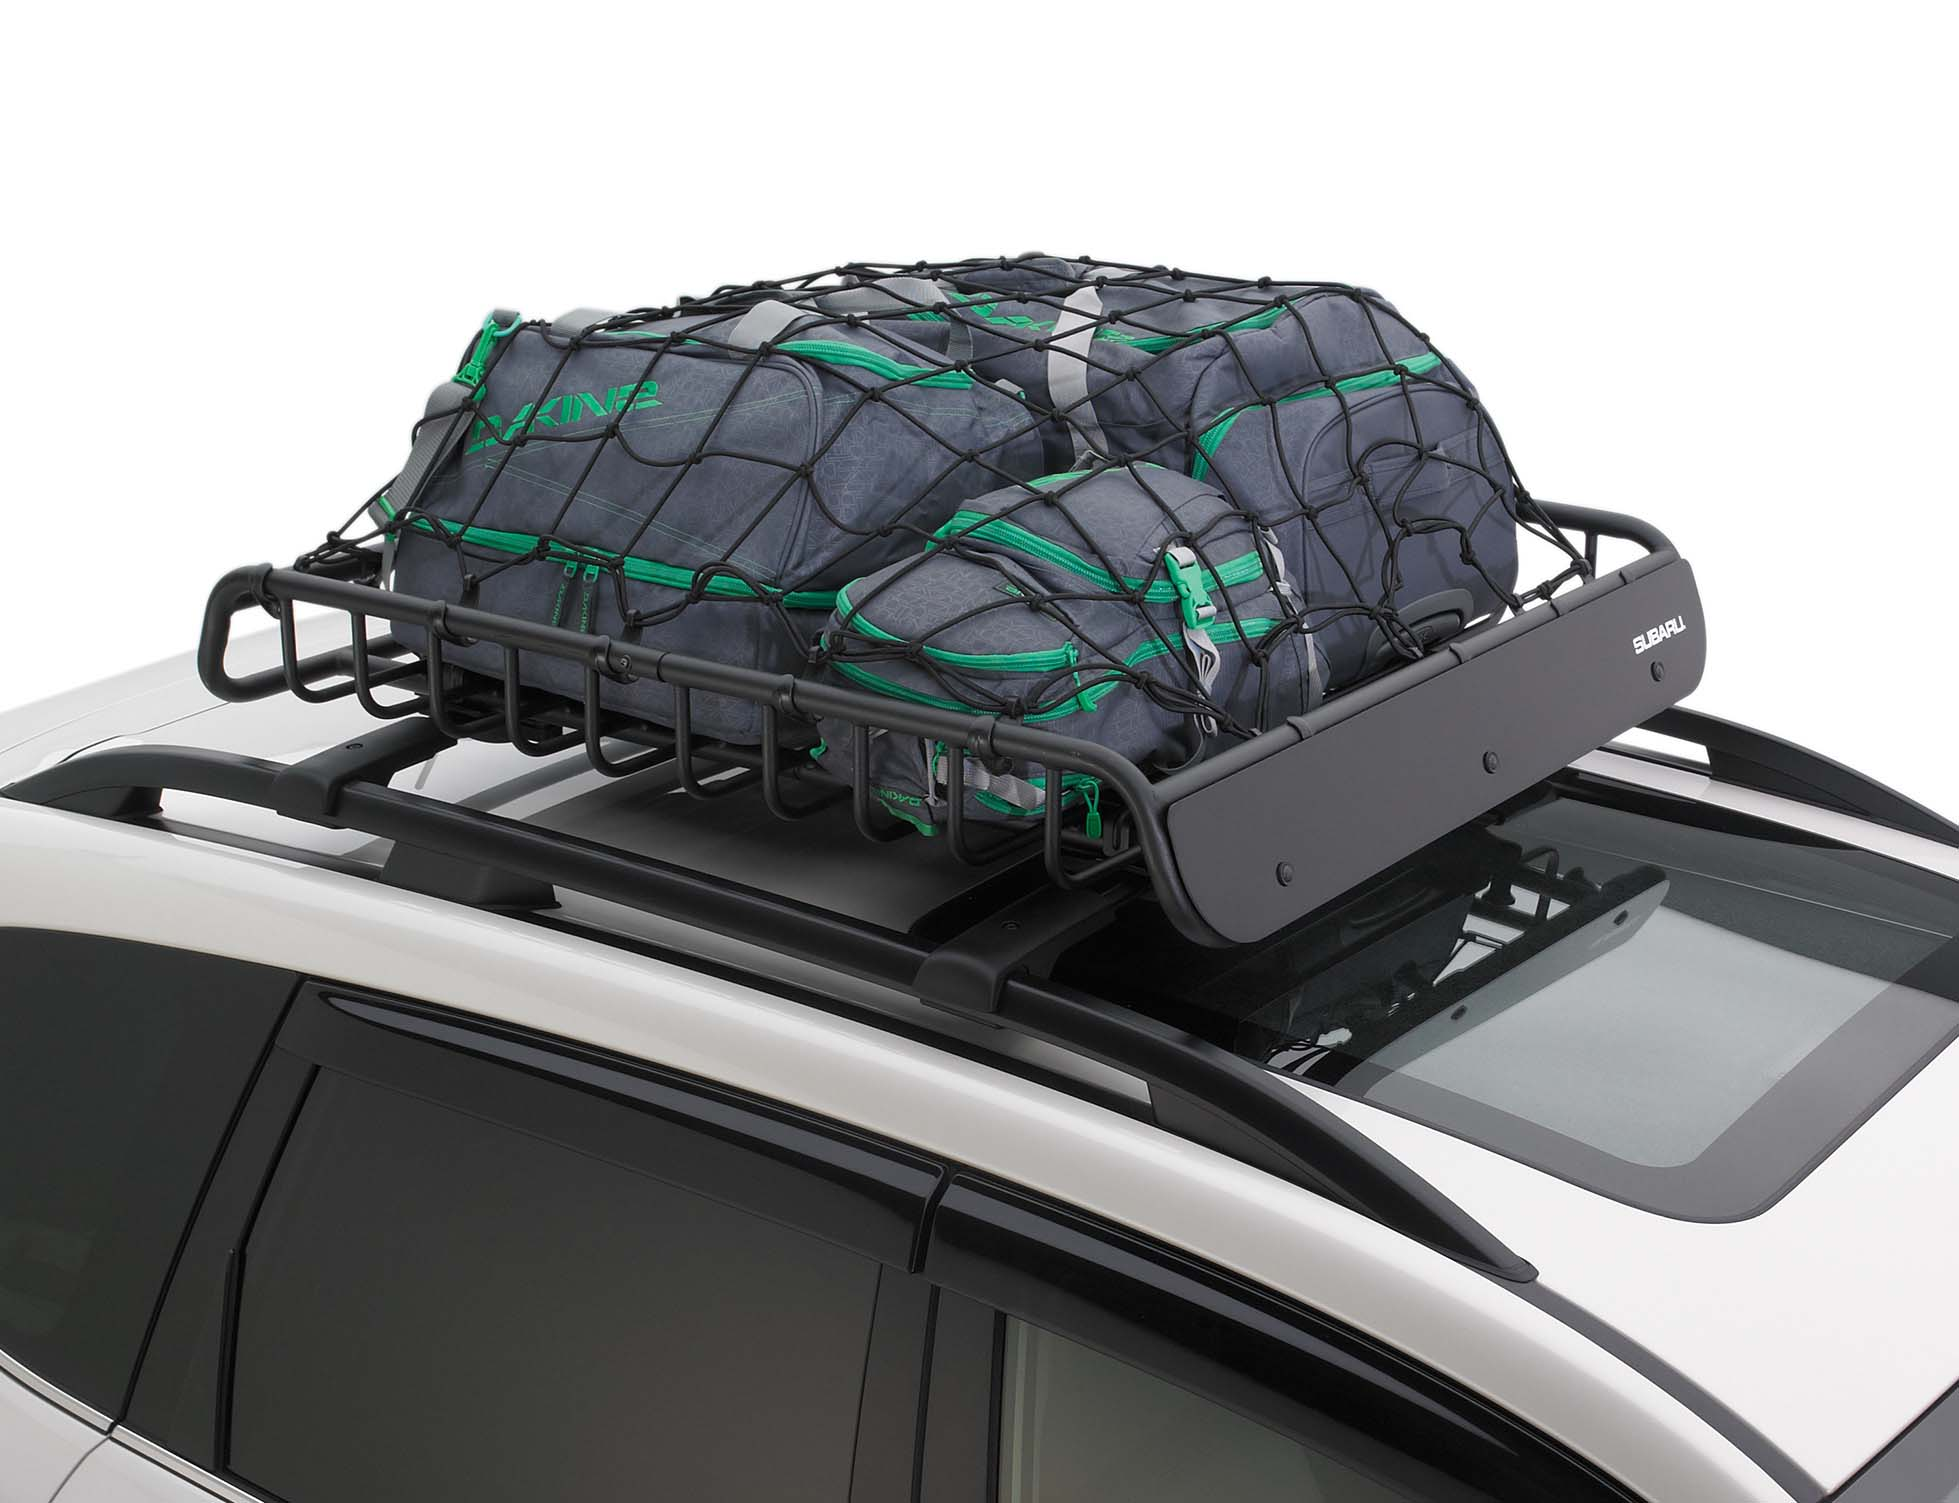 2015 subaru outback heavy duty roof cargo basket heavy. Black Bedroom Furniture Sets. Home Design Ideas